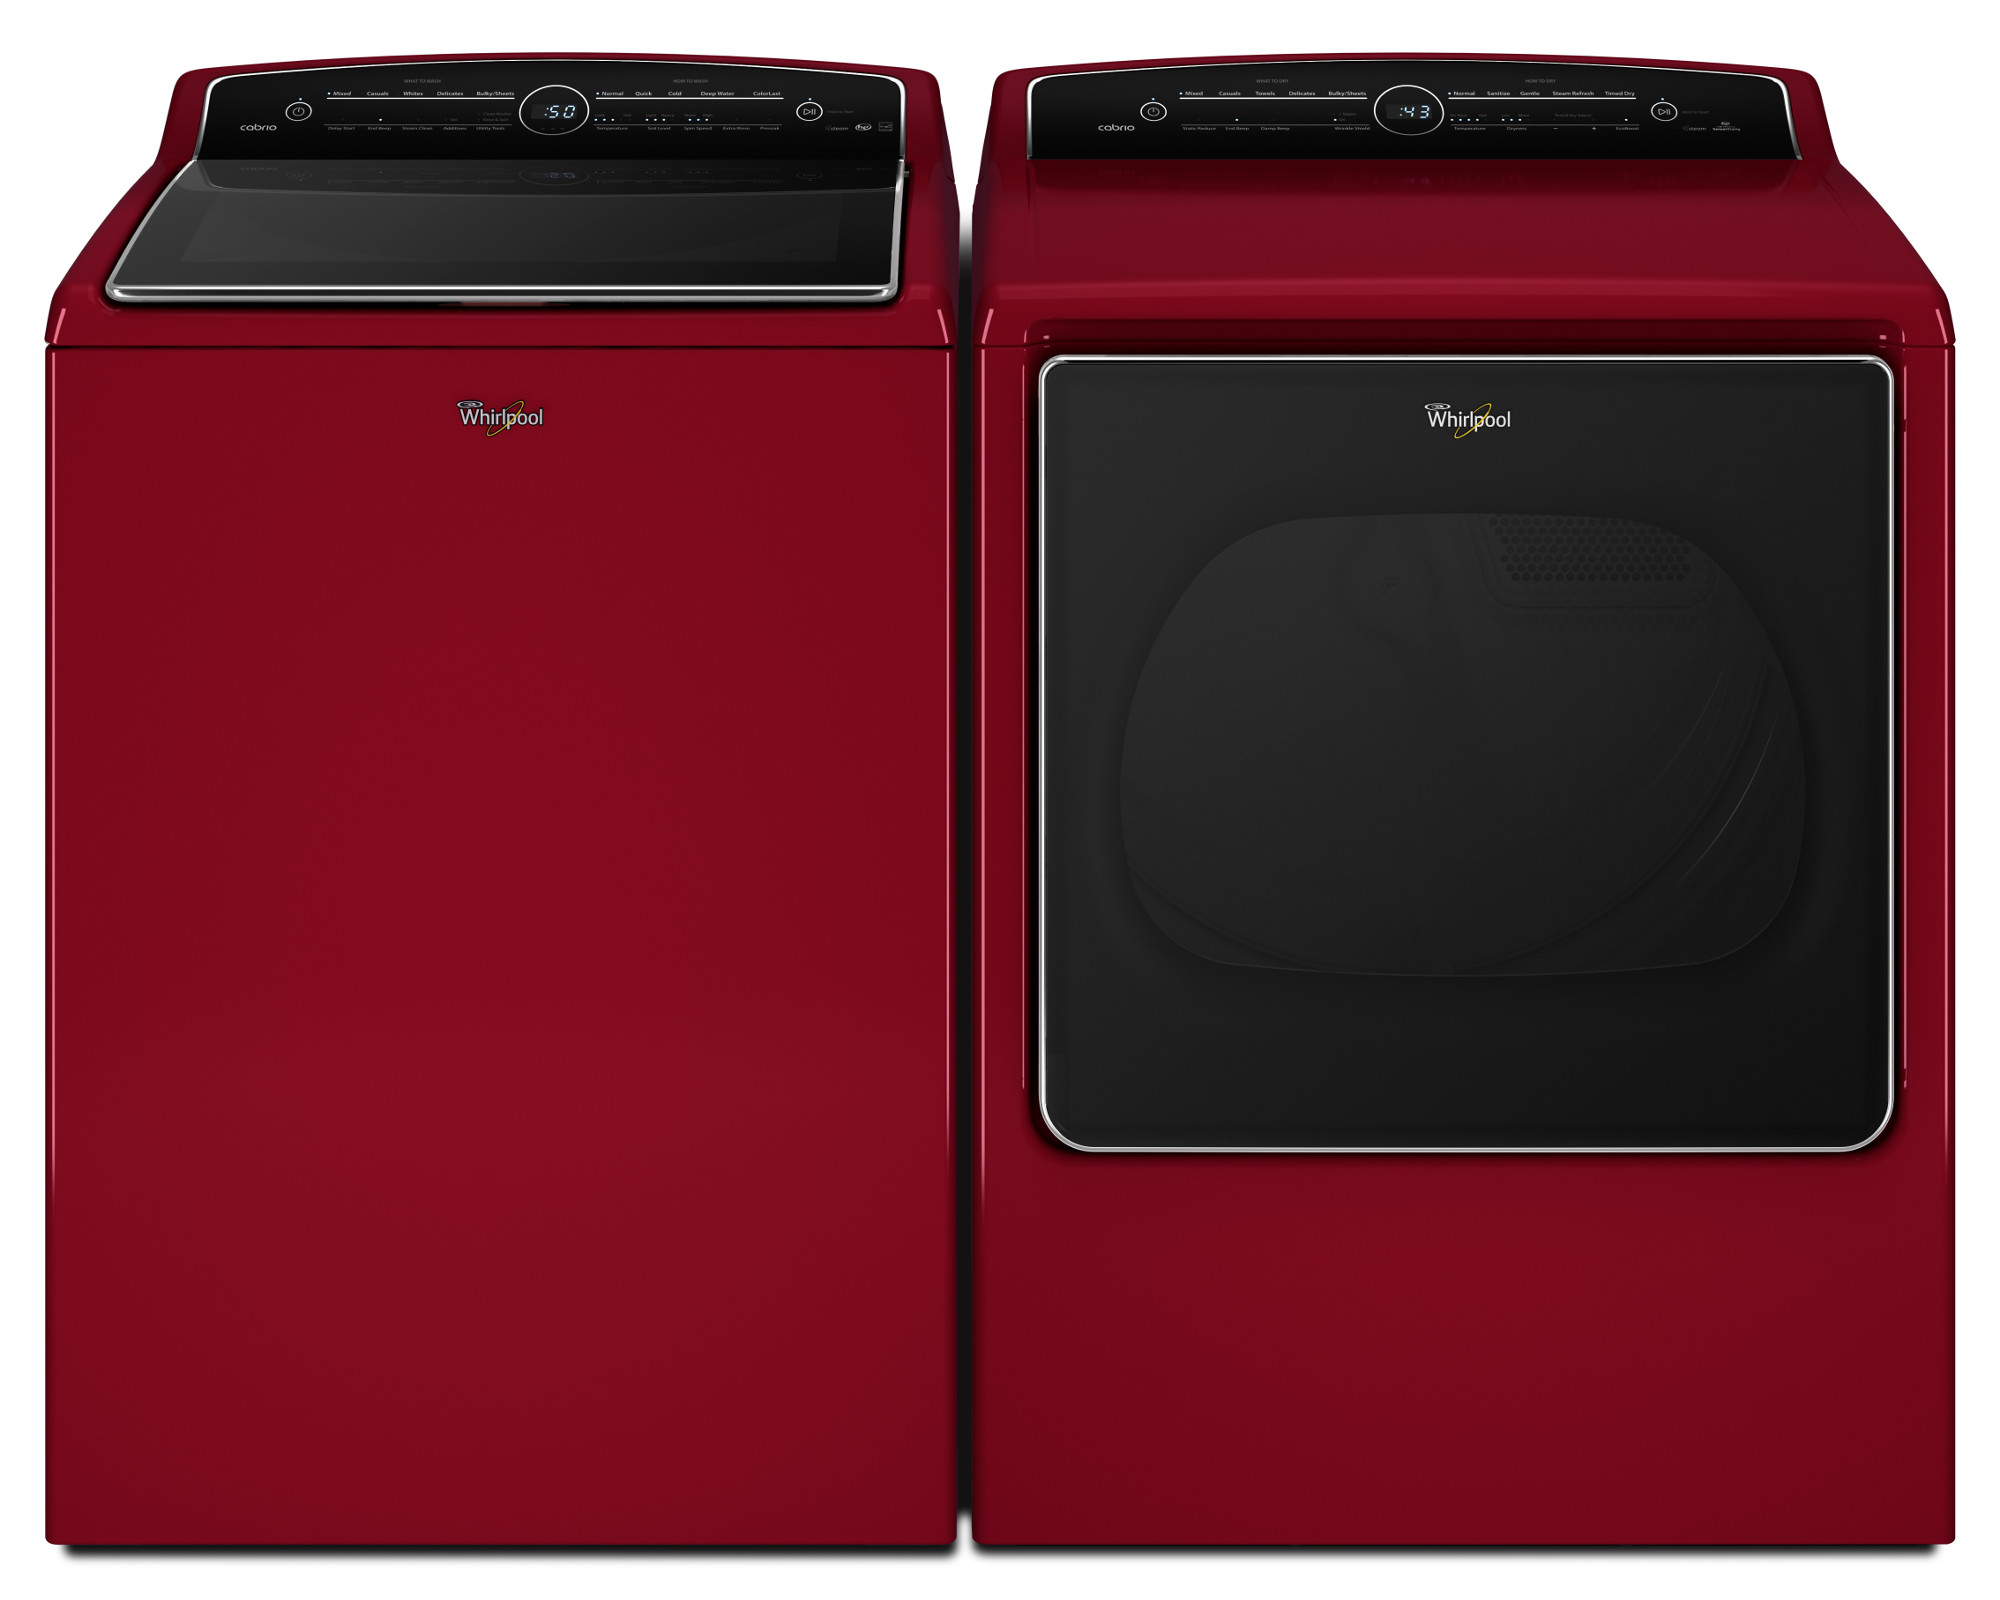 Whirlpool WED8500DR 8.8 cu. ft. Cabrio® High-Efficiency Electric Steam Dryer - Red